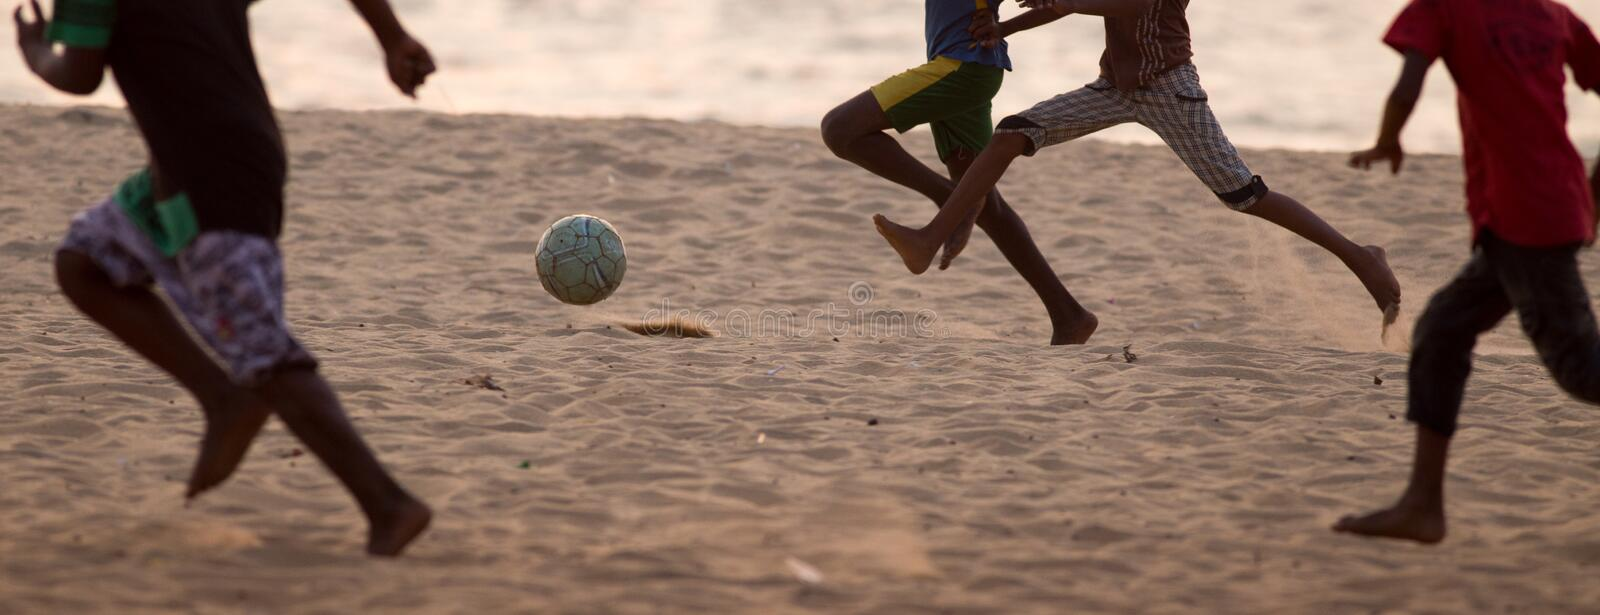 Kids playing football barefoot on sand royalty free stock images